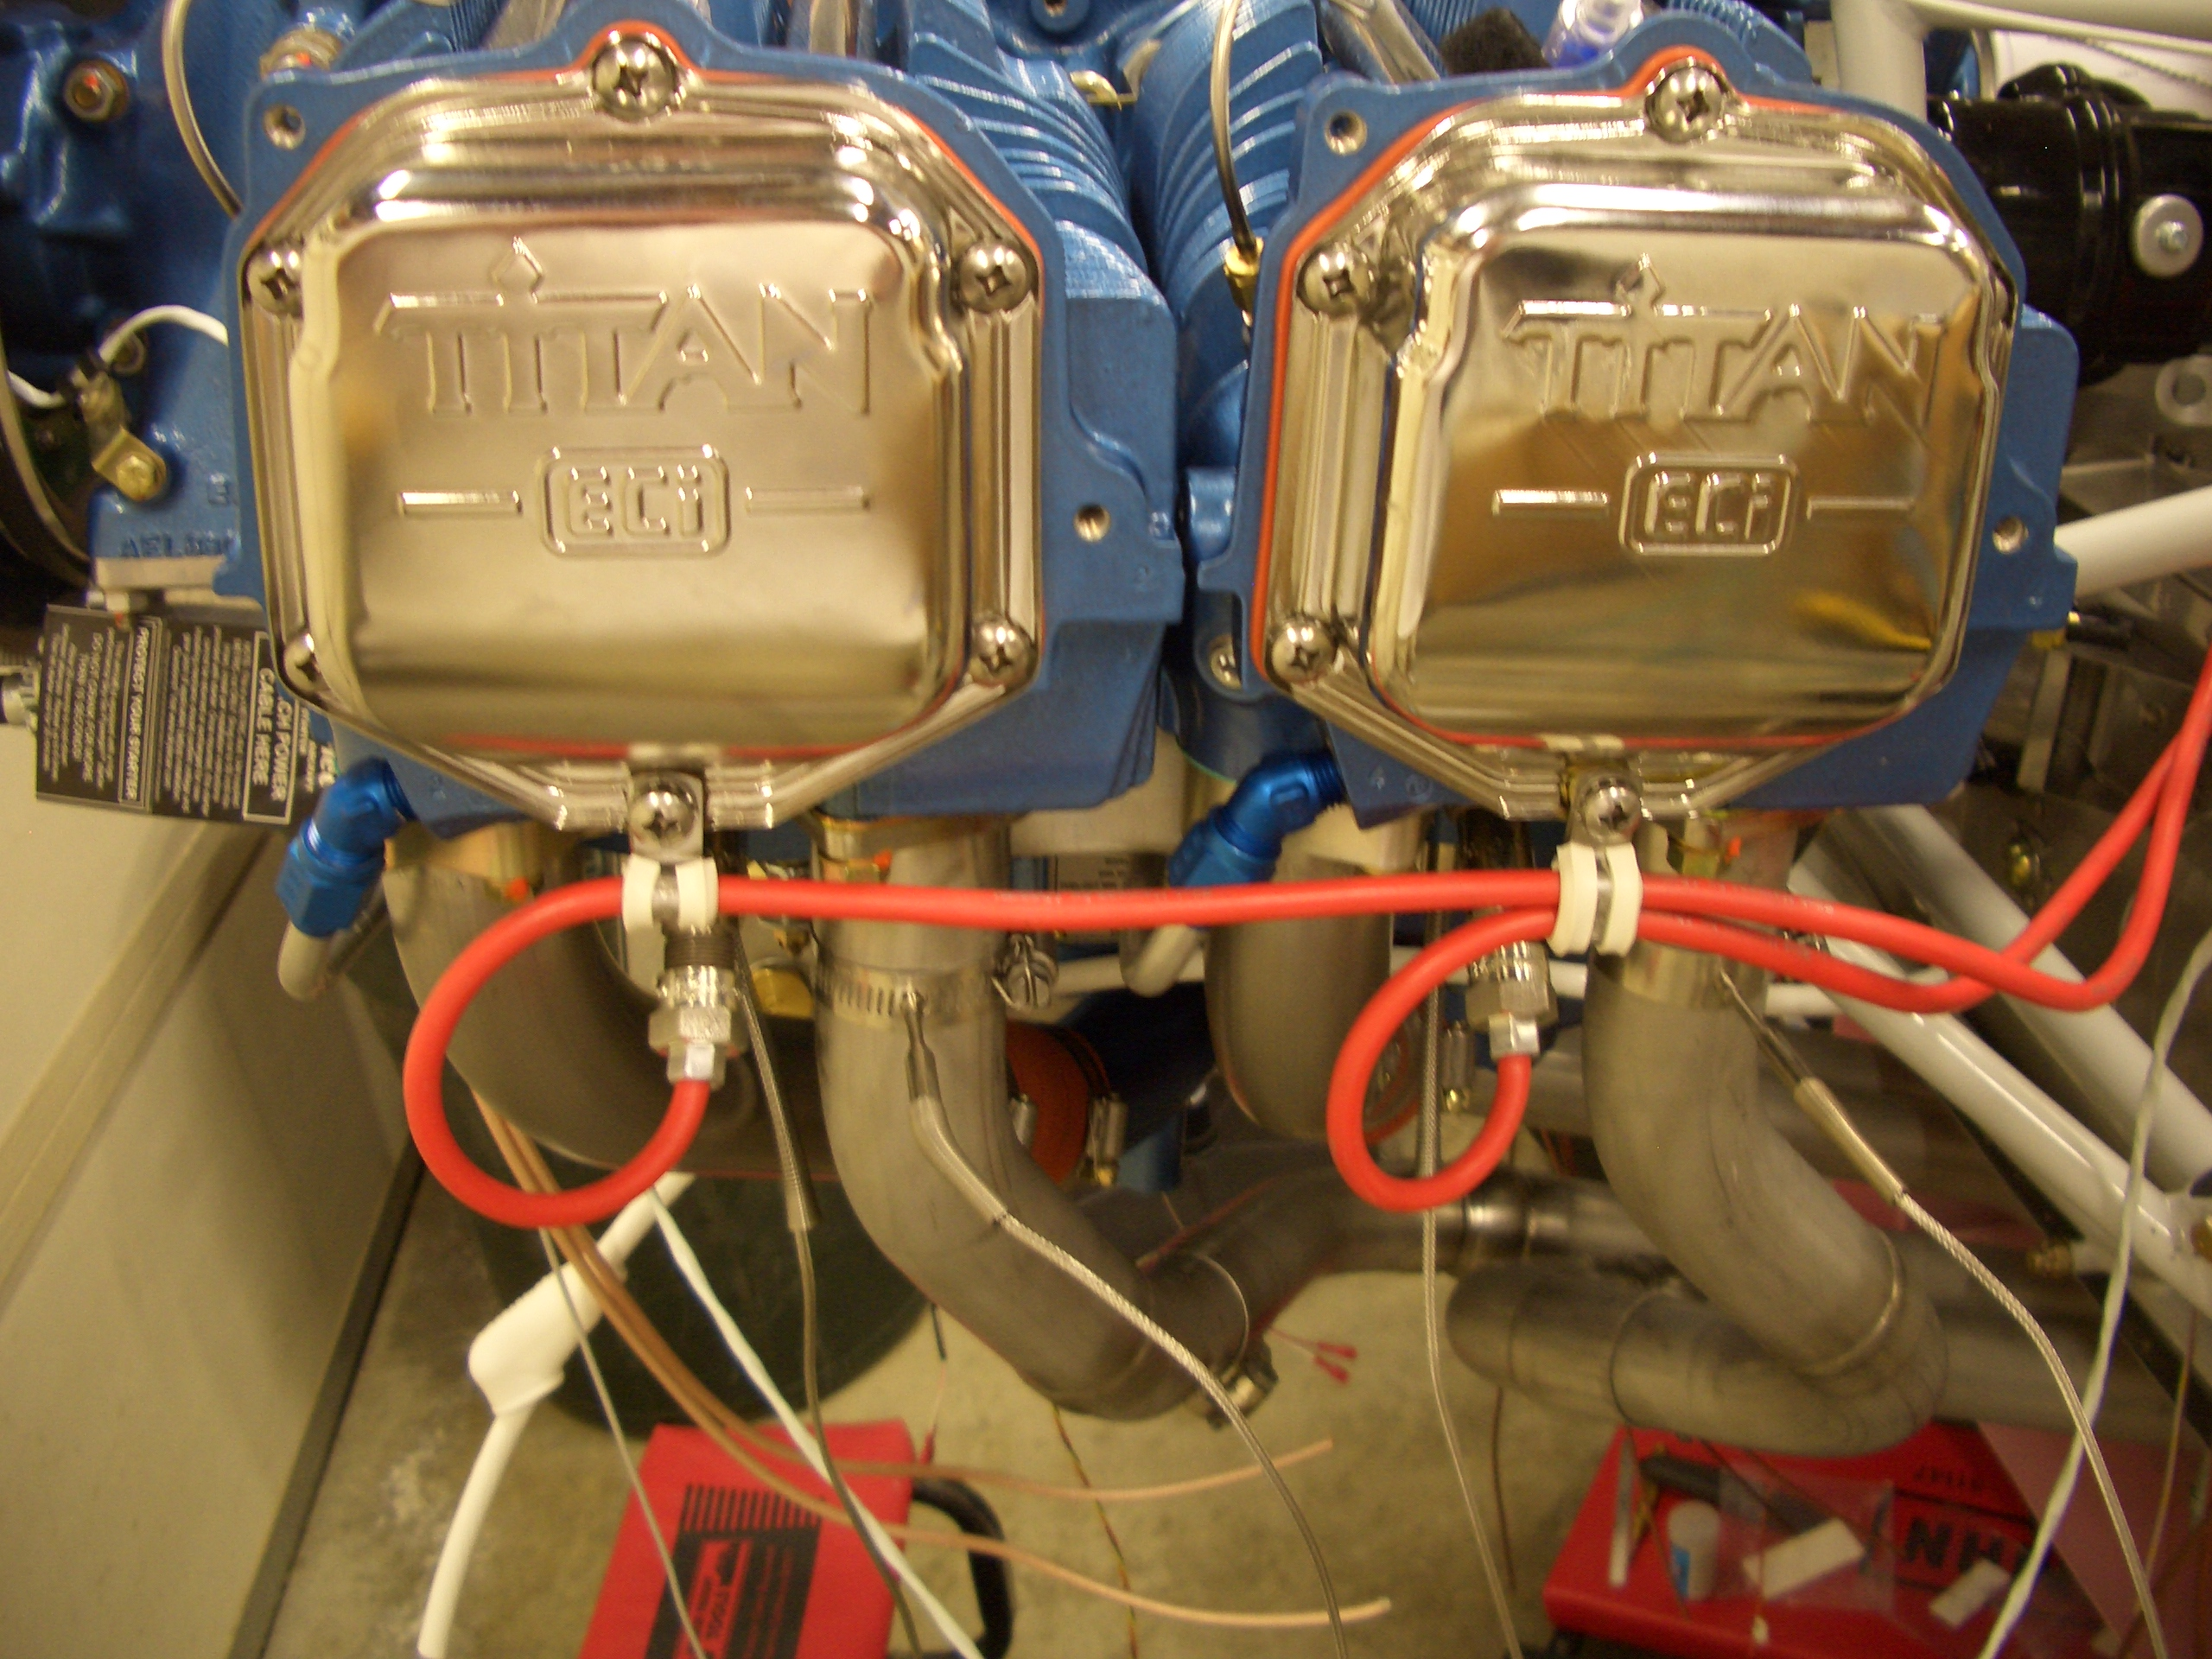 Installed Spark Plug Wire Clamps and Forward Elevator ... on installing ignition coil, installing pistons, installing camshaft,